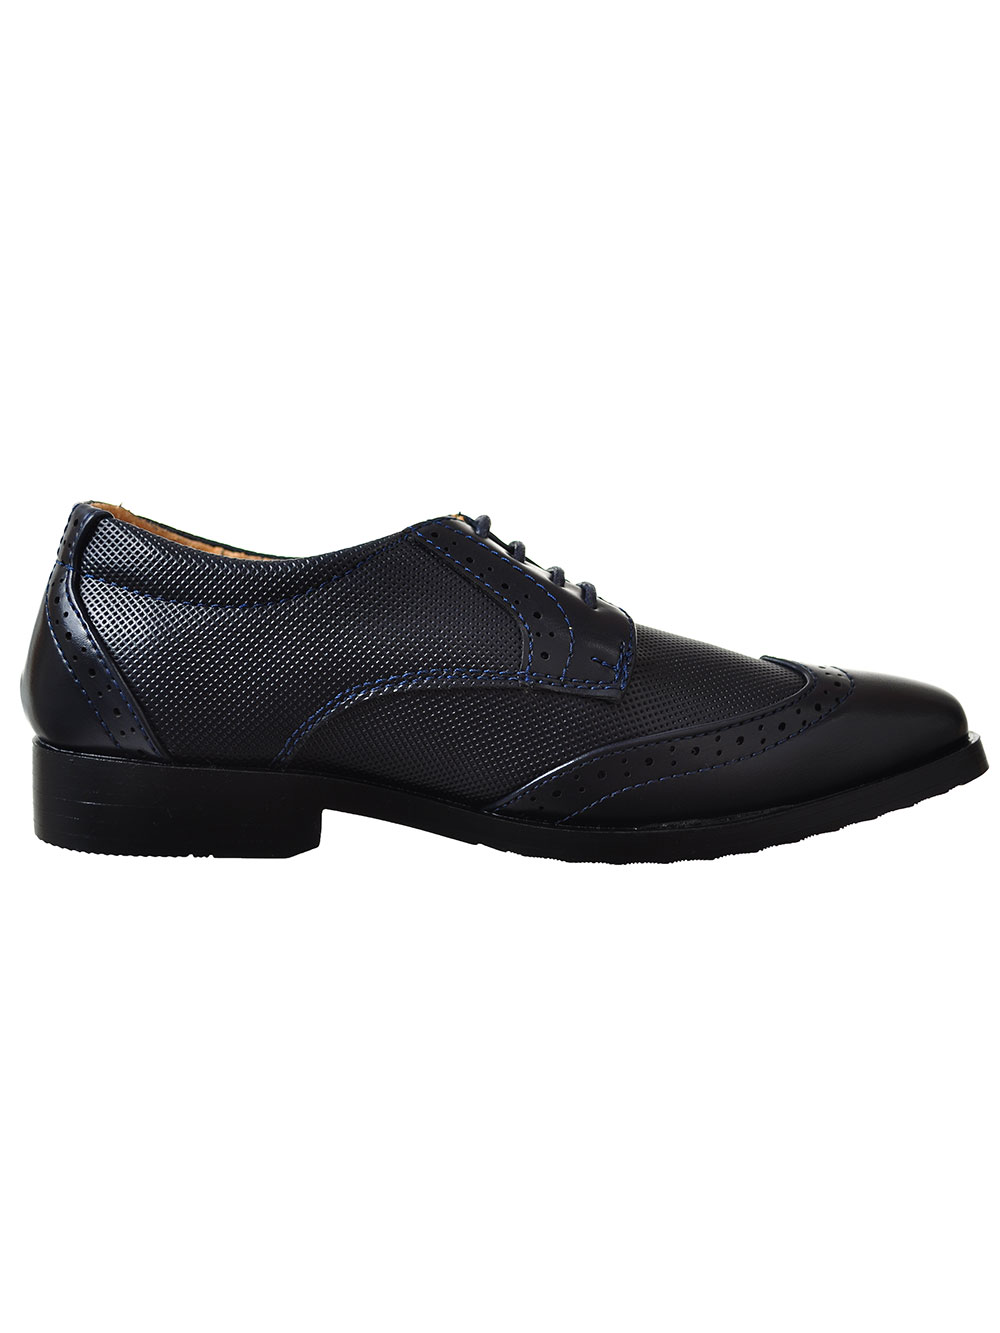 Tailles 7-8 Facile Strider Boys /'Bout D/'Aile Chaussures